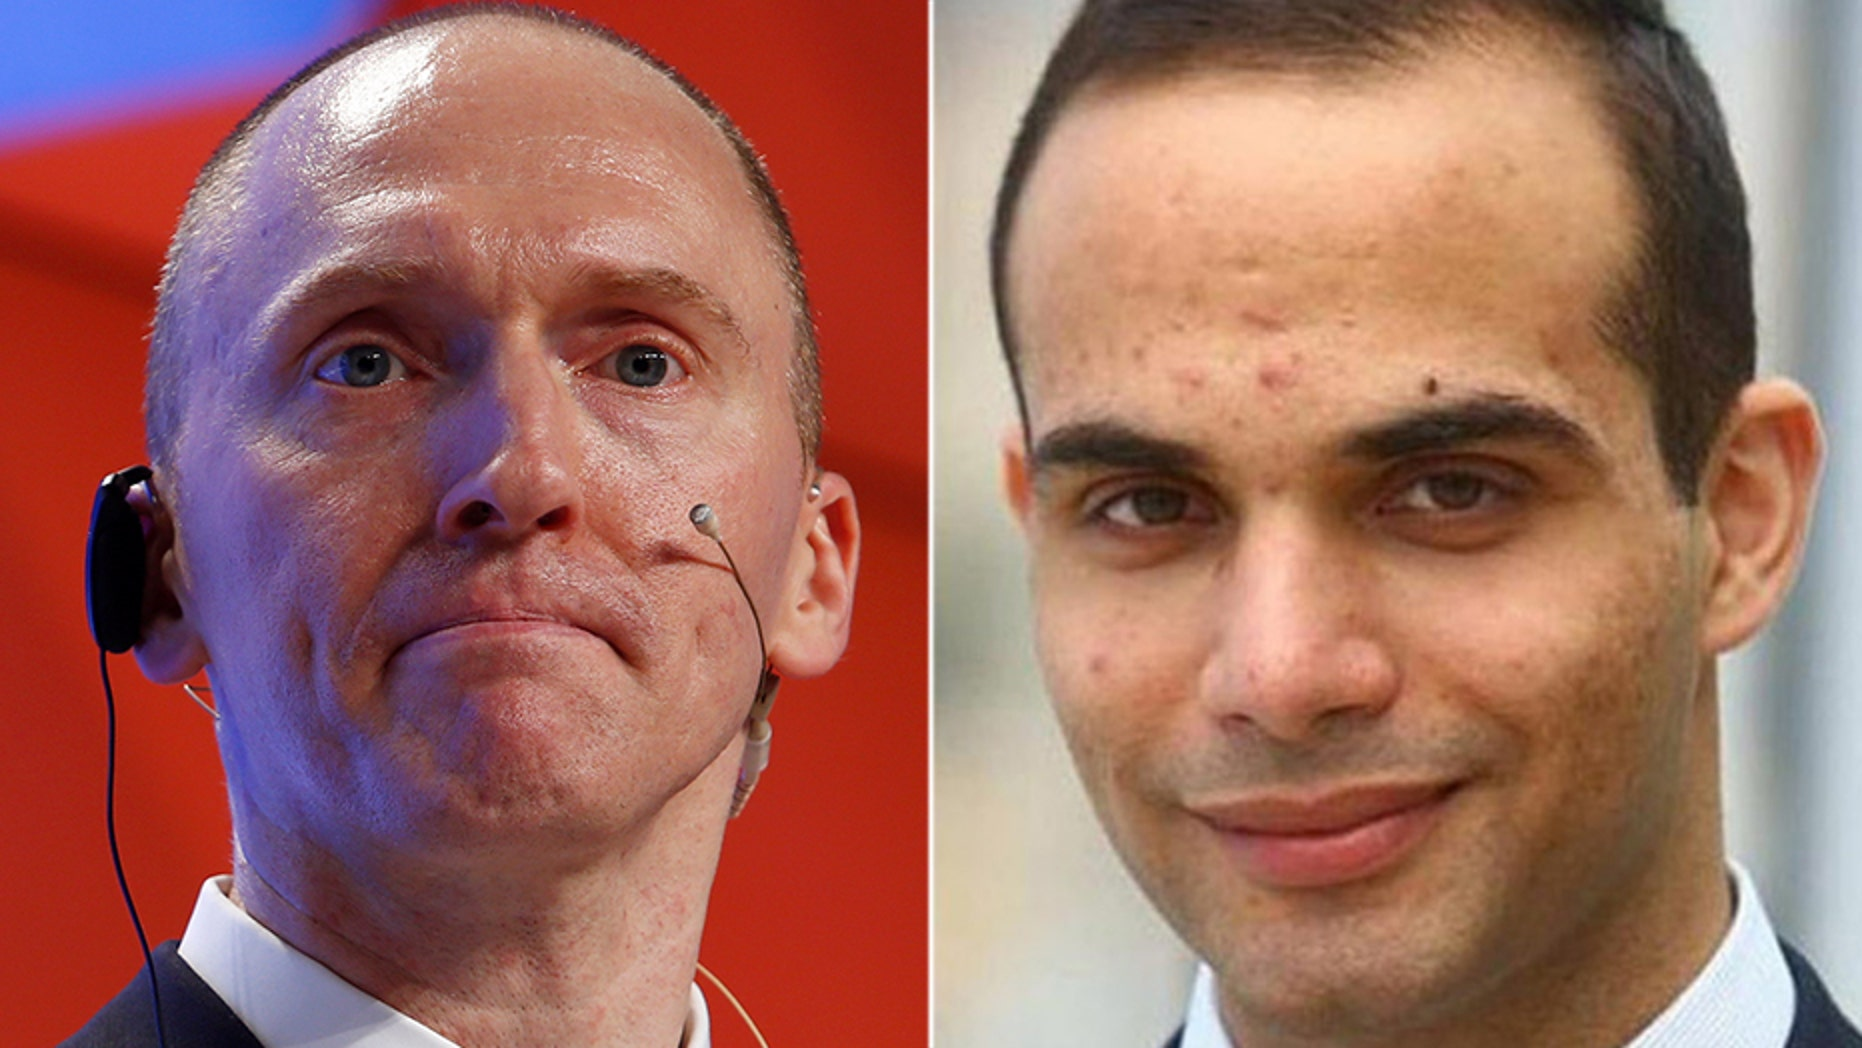 Carter Page (left) and George Papadopoulos.